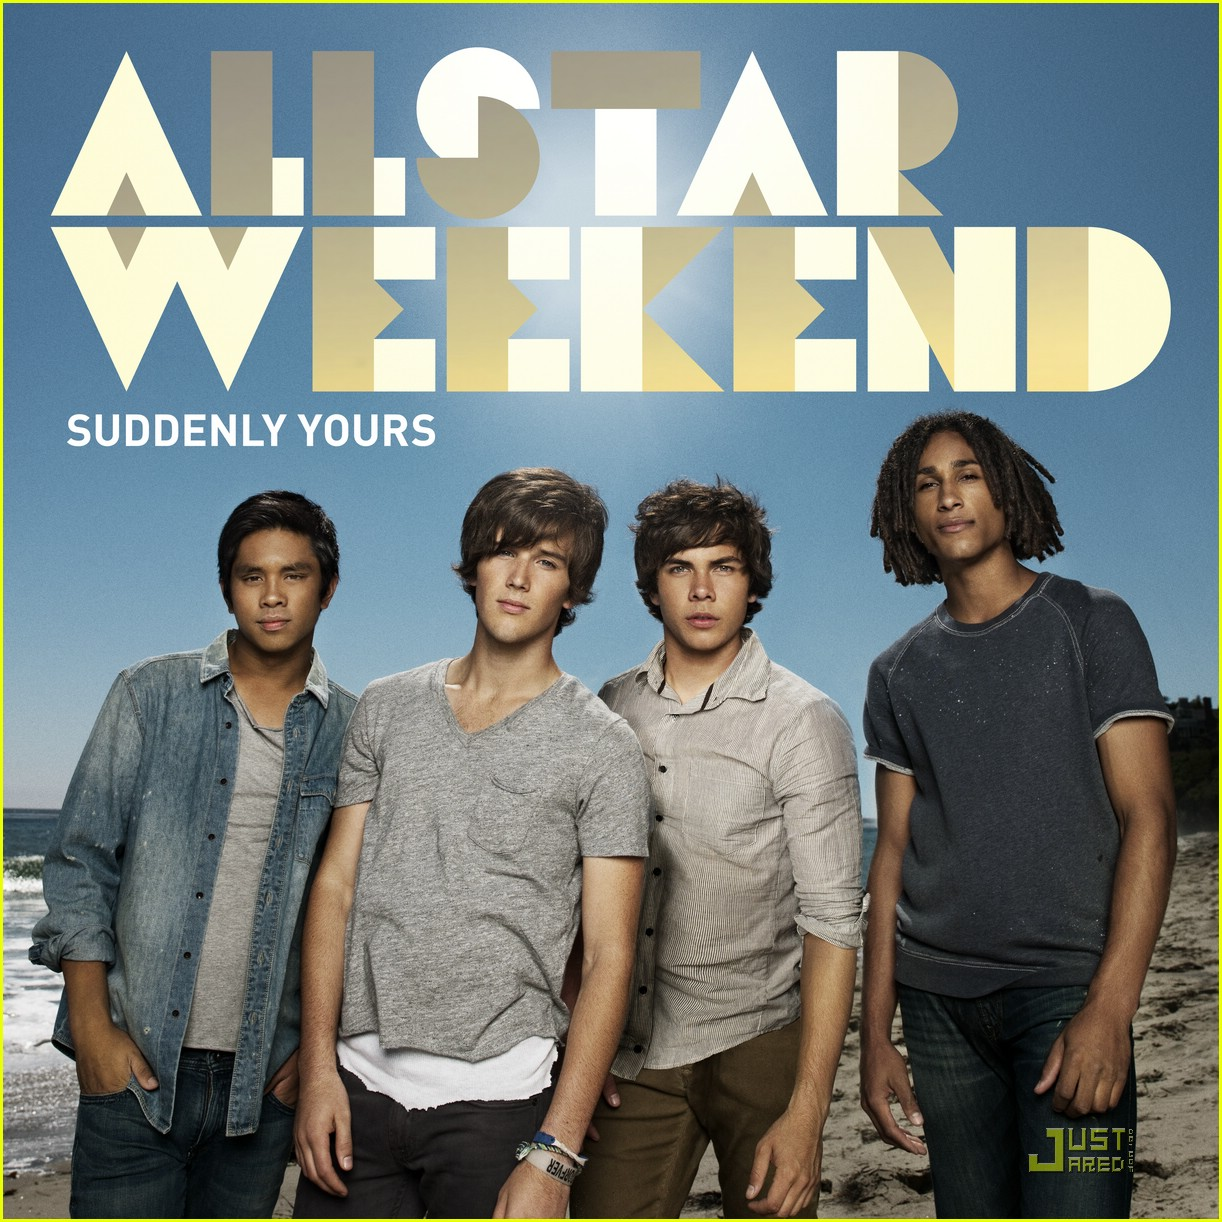 allstar weekend suddenly yours out now 01